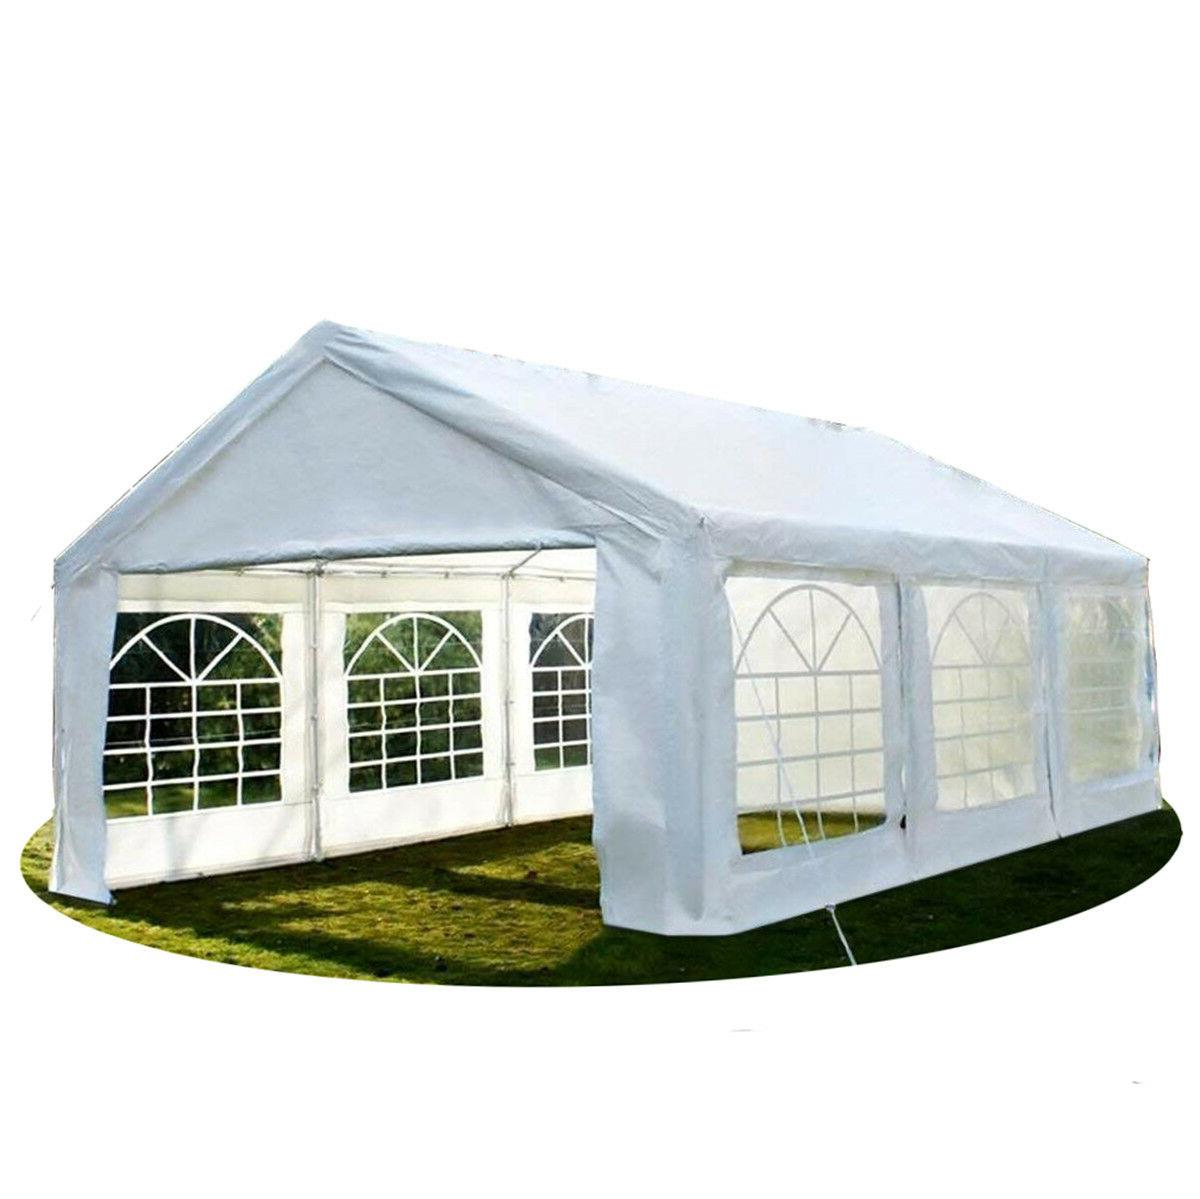 20 x 20 ft commercial wedding party